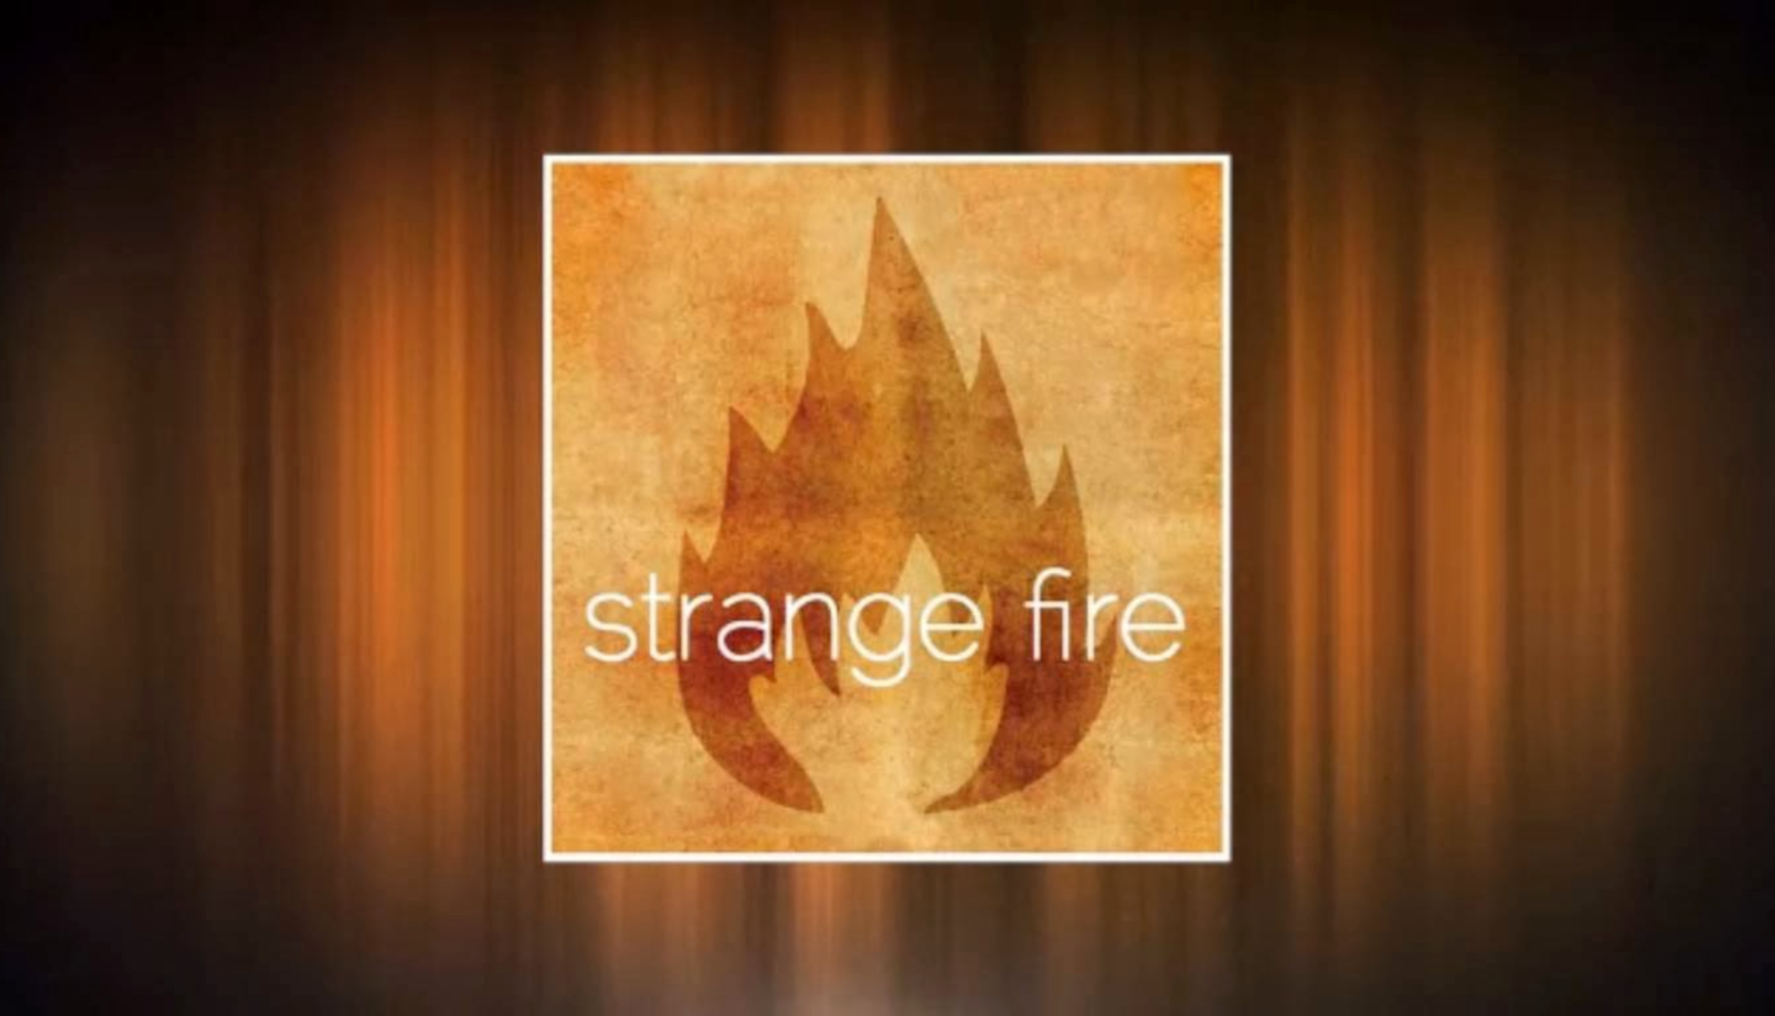 images/HomeSlide/strange-fire.jpg